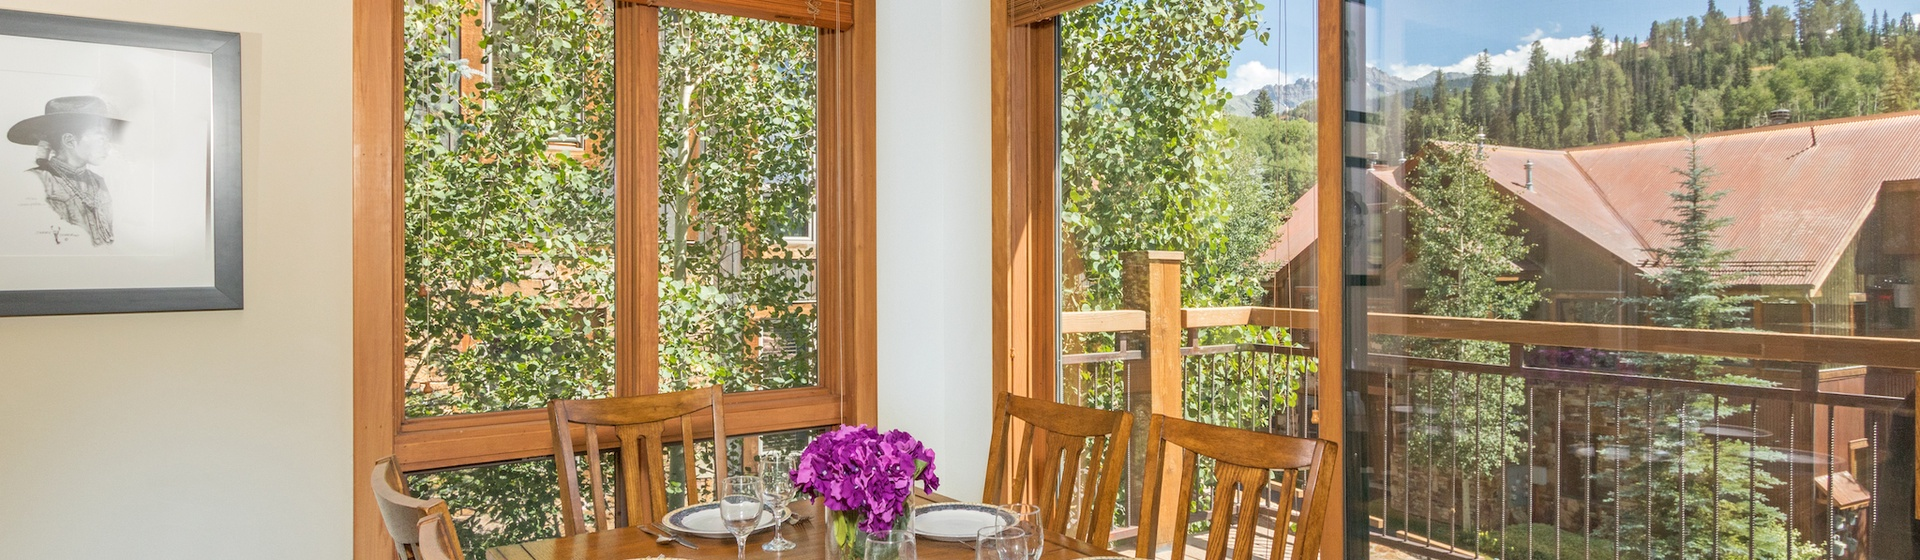 3-Telluride-Terraces-402-Dining-Area.JPG